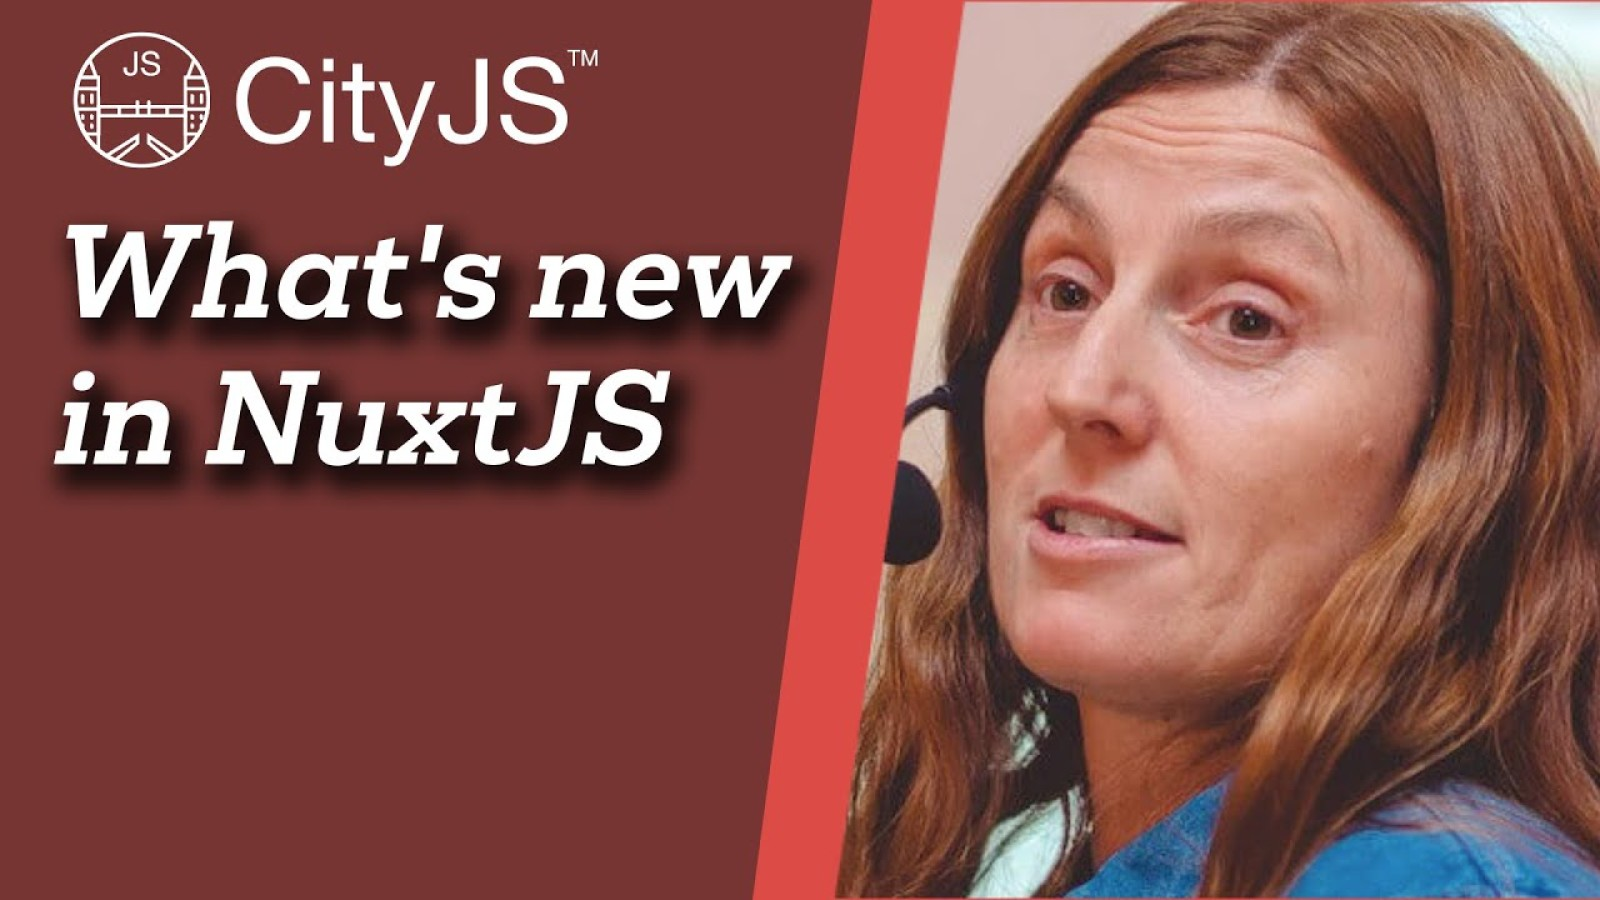 What's new in Nuxt.js